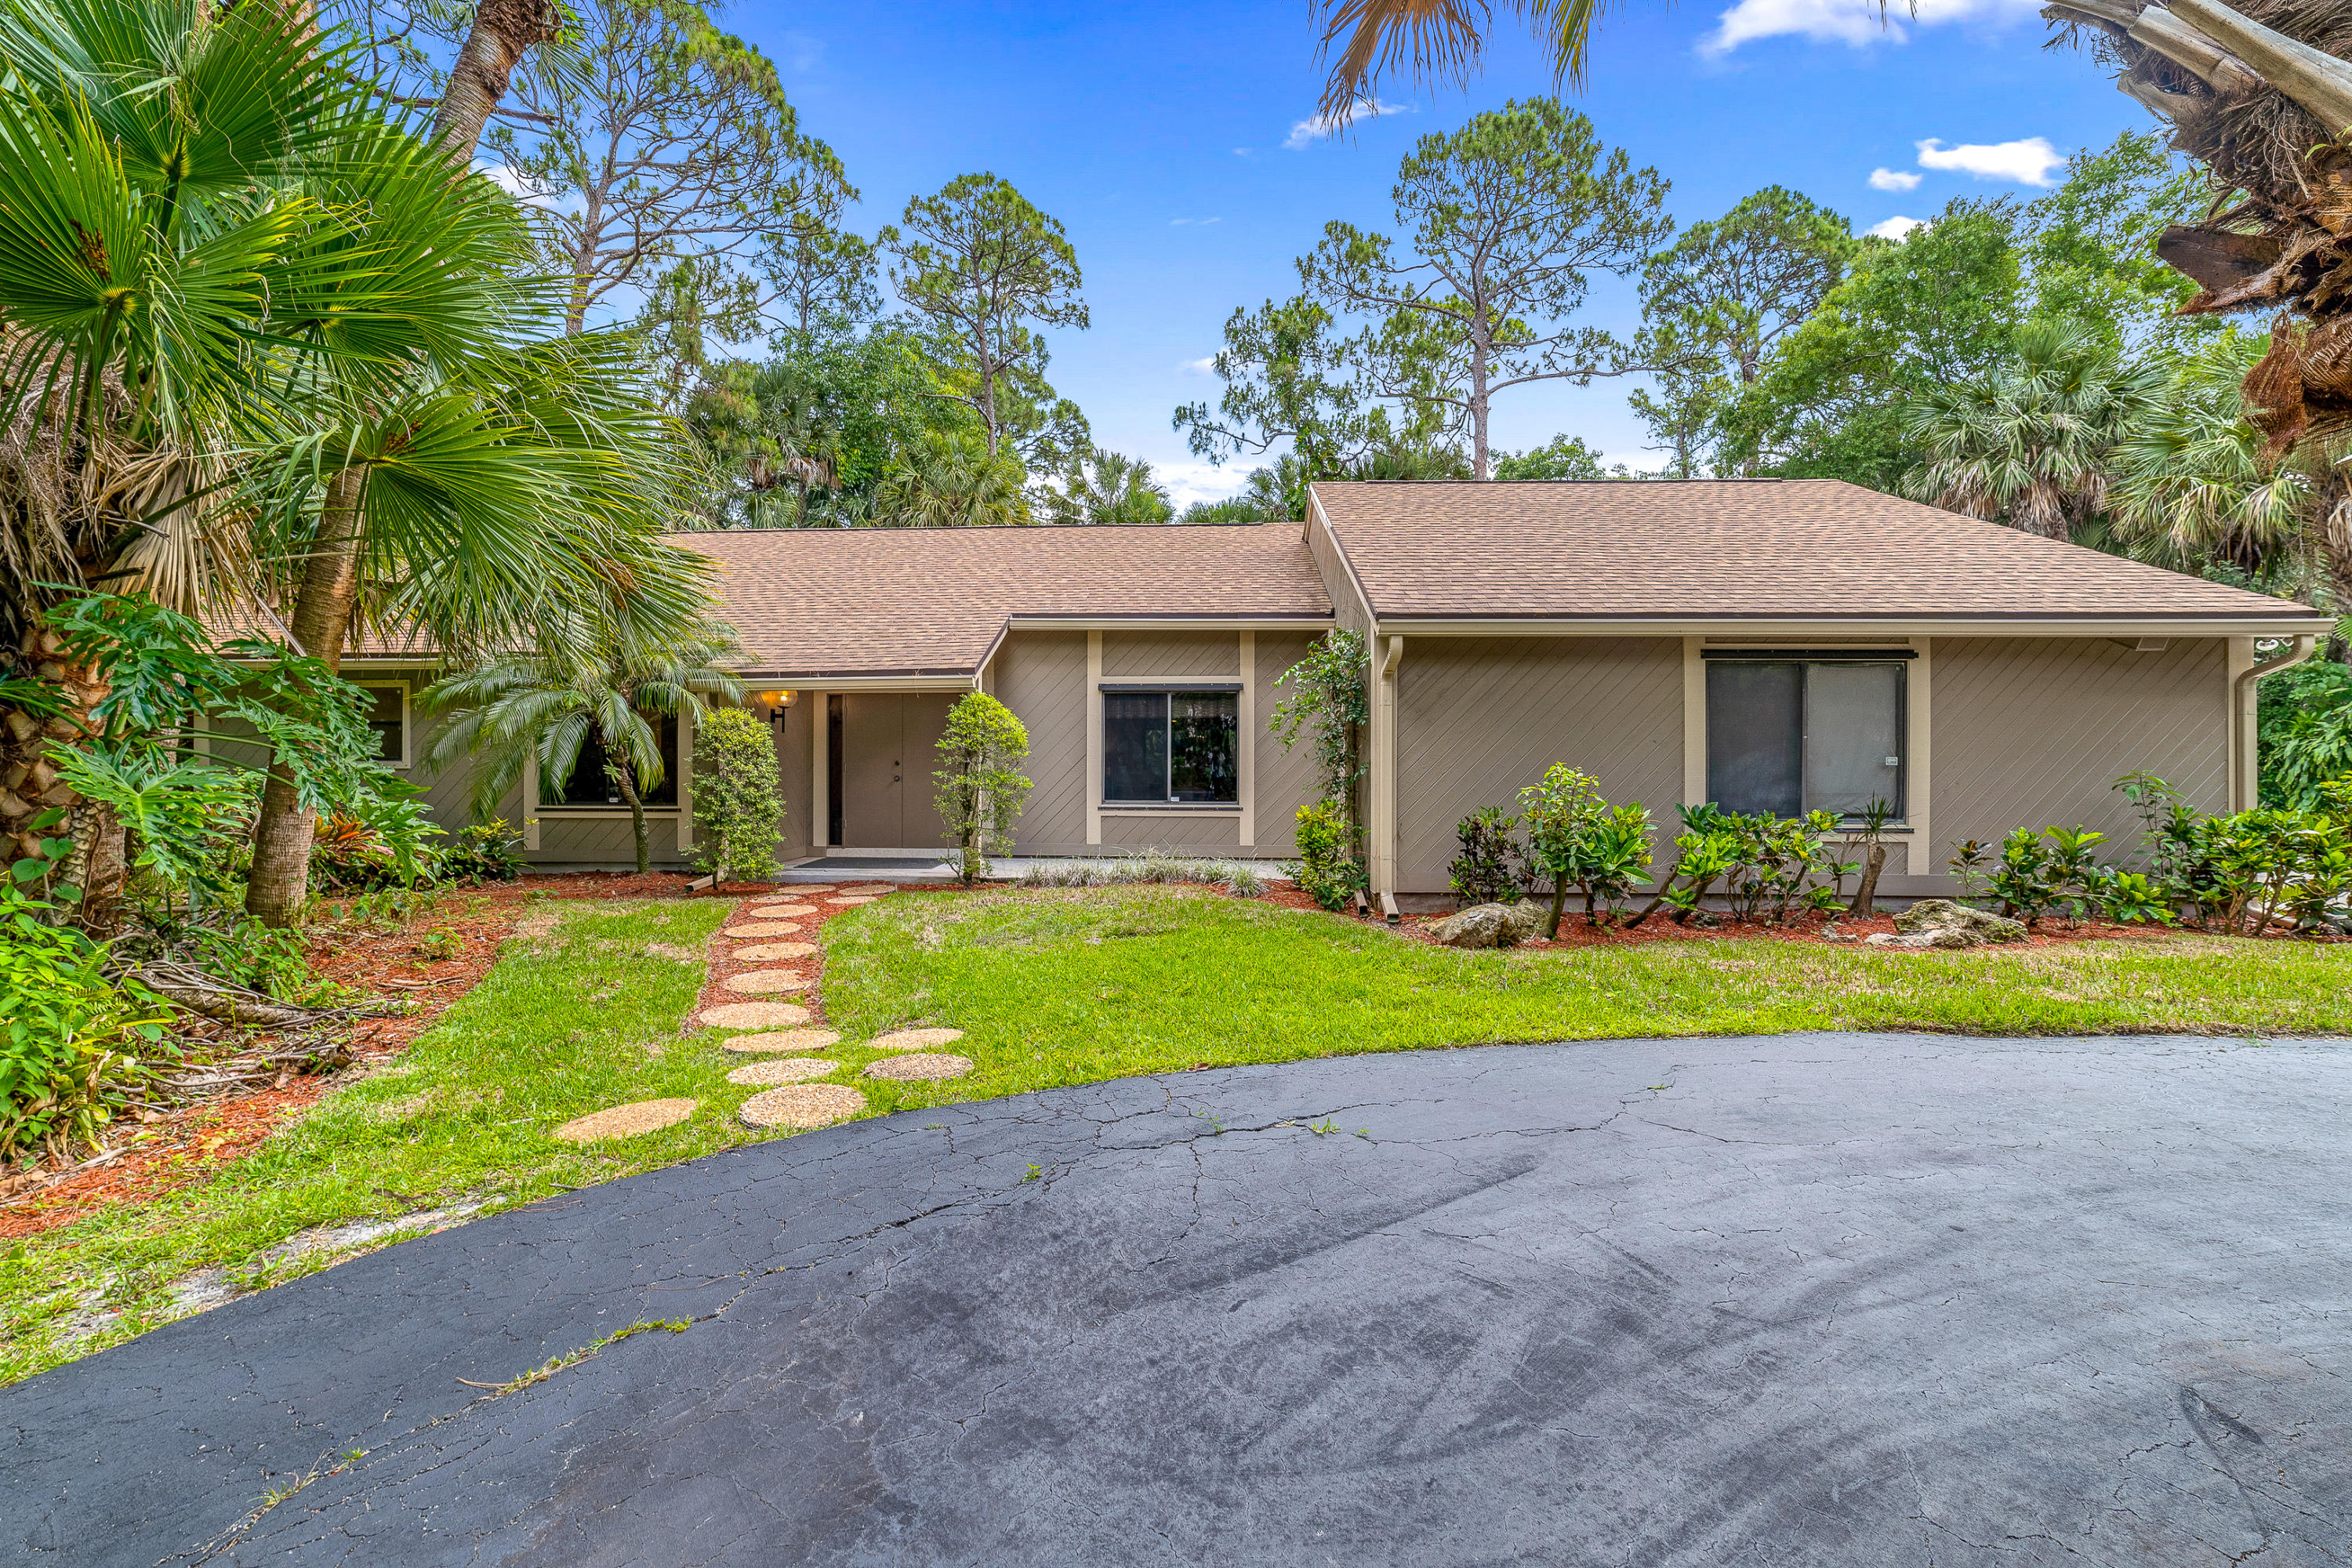 8570  Thousand Pines Circle  For Sale 10720801, FL